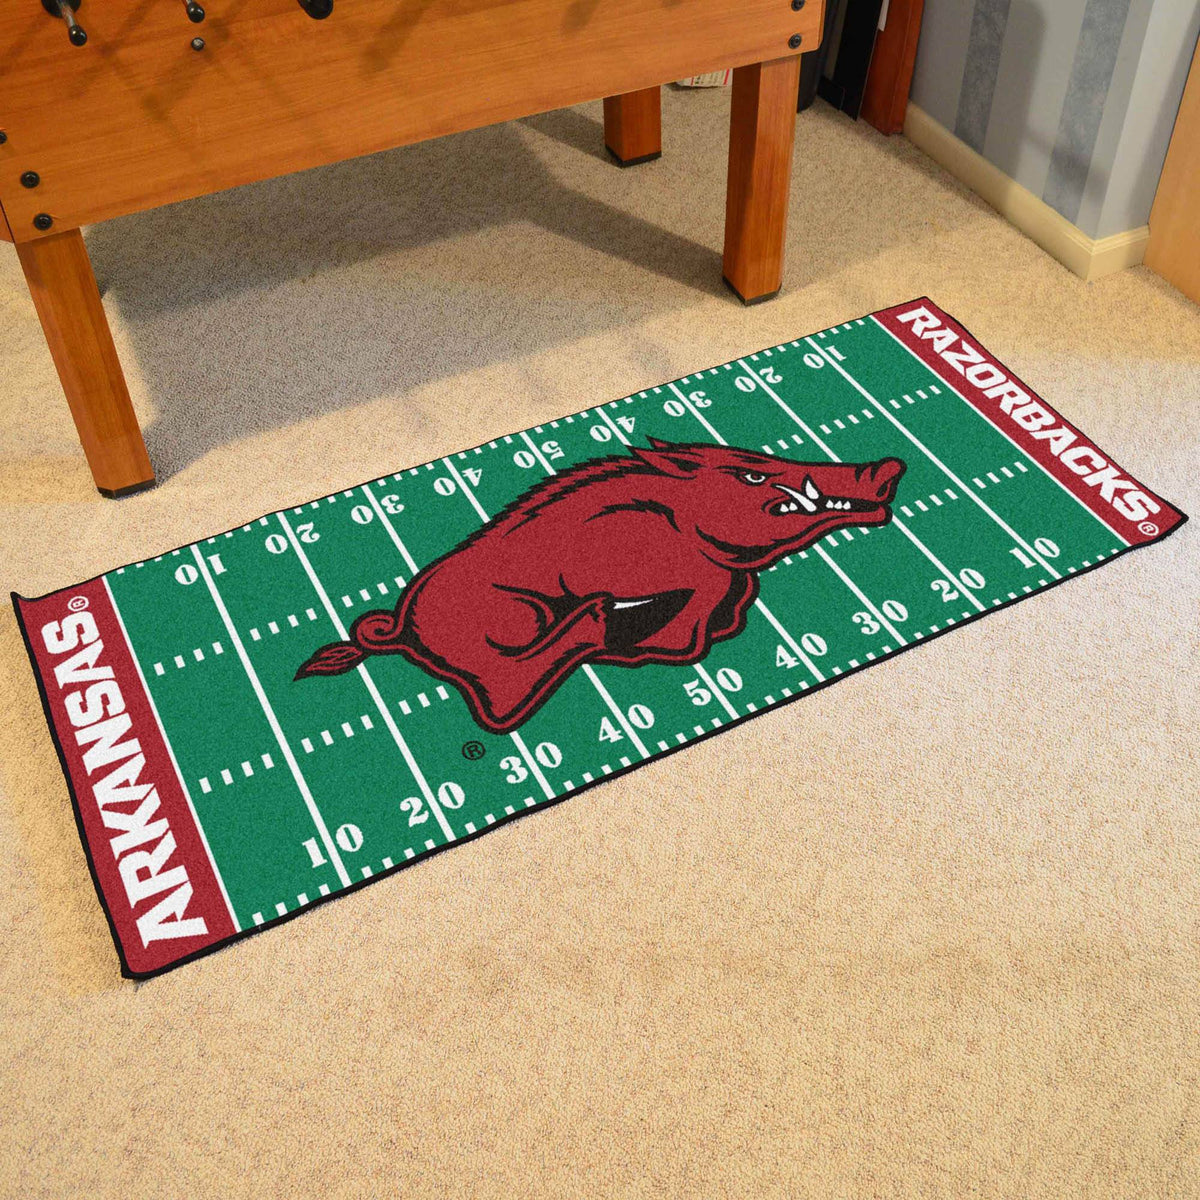 Collegiate - Football Field Runner Collegiate Mats, Rectangular Mats, Football Field Runner, Collegiate, Home Fan Mats Arkansas